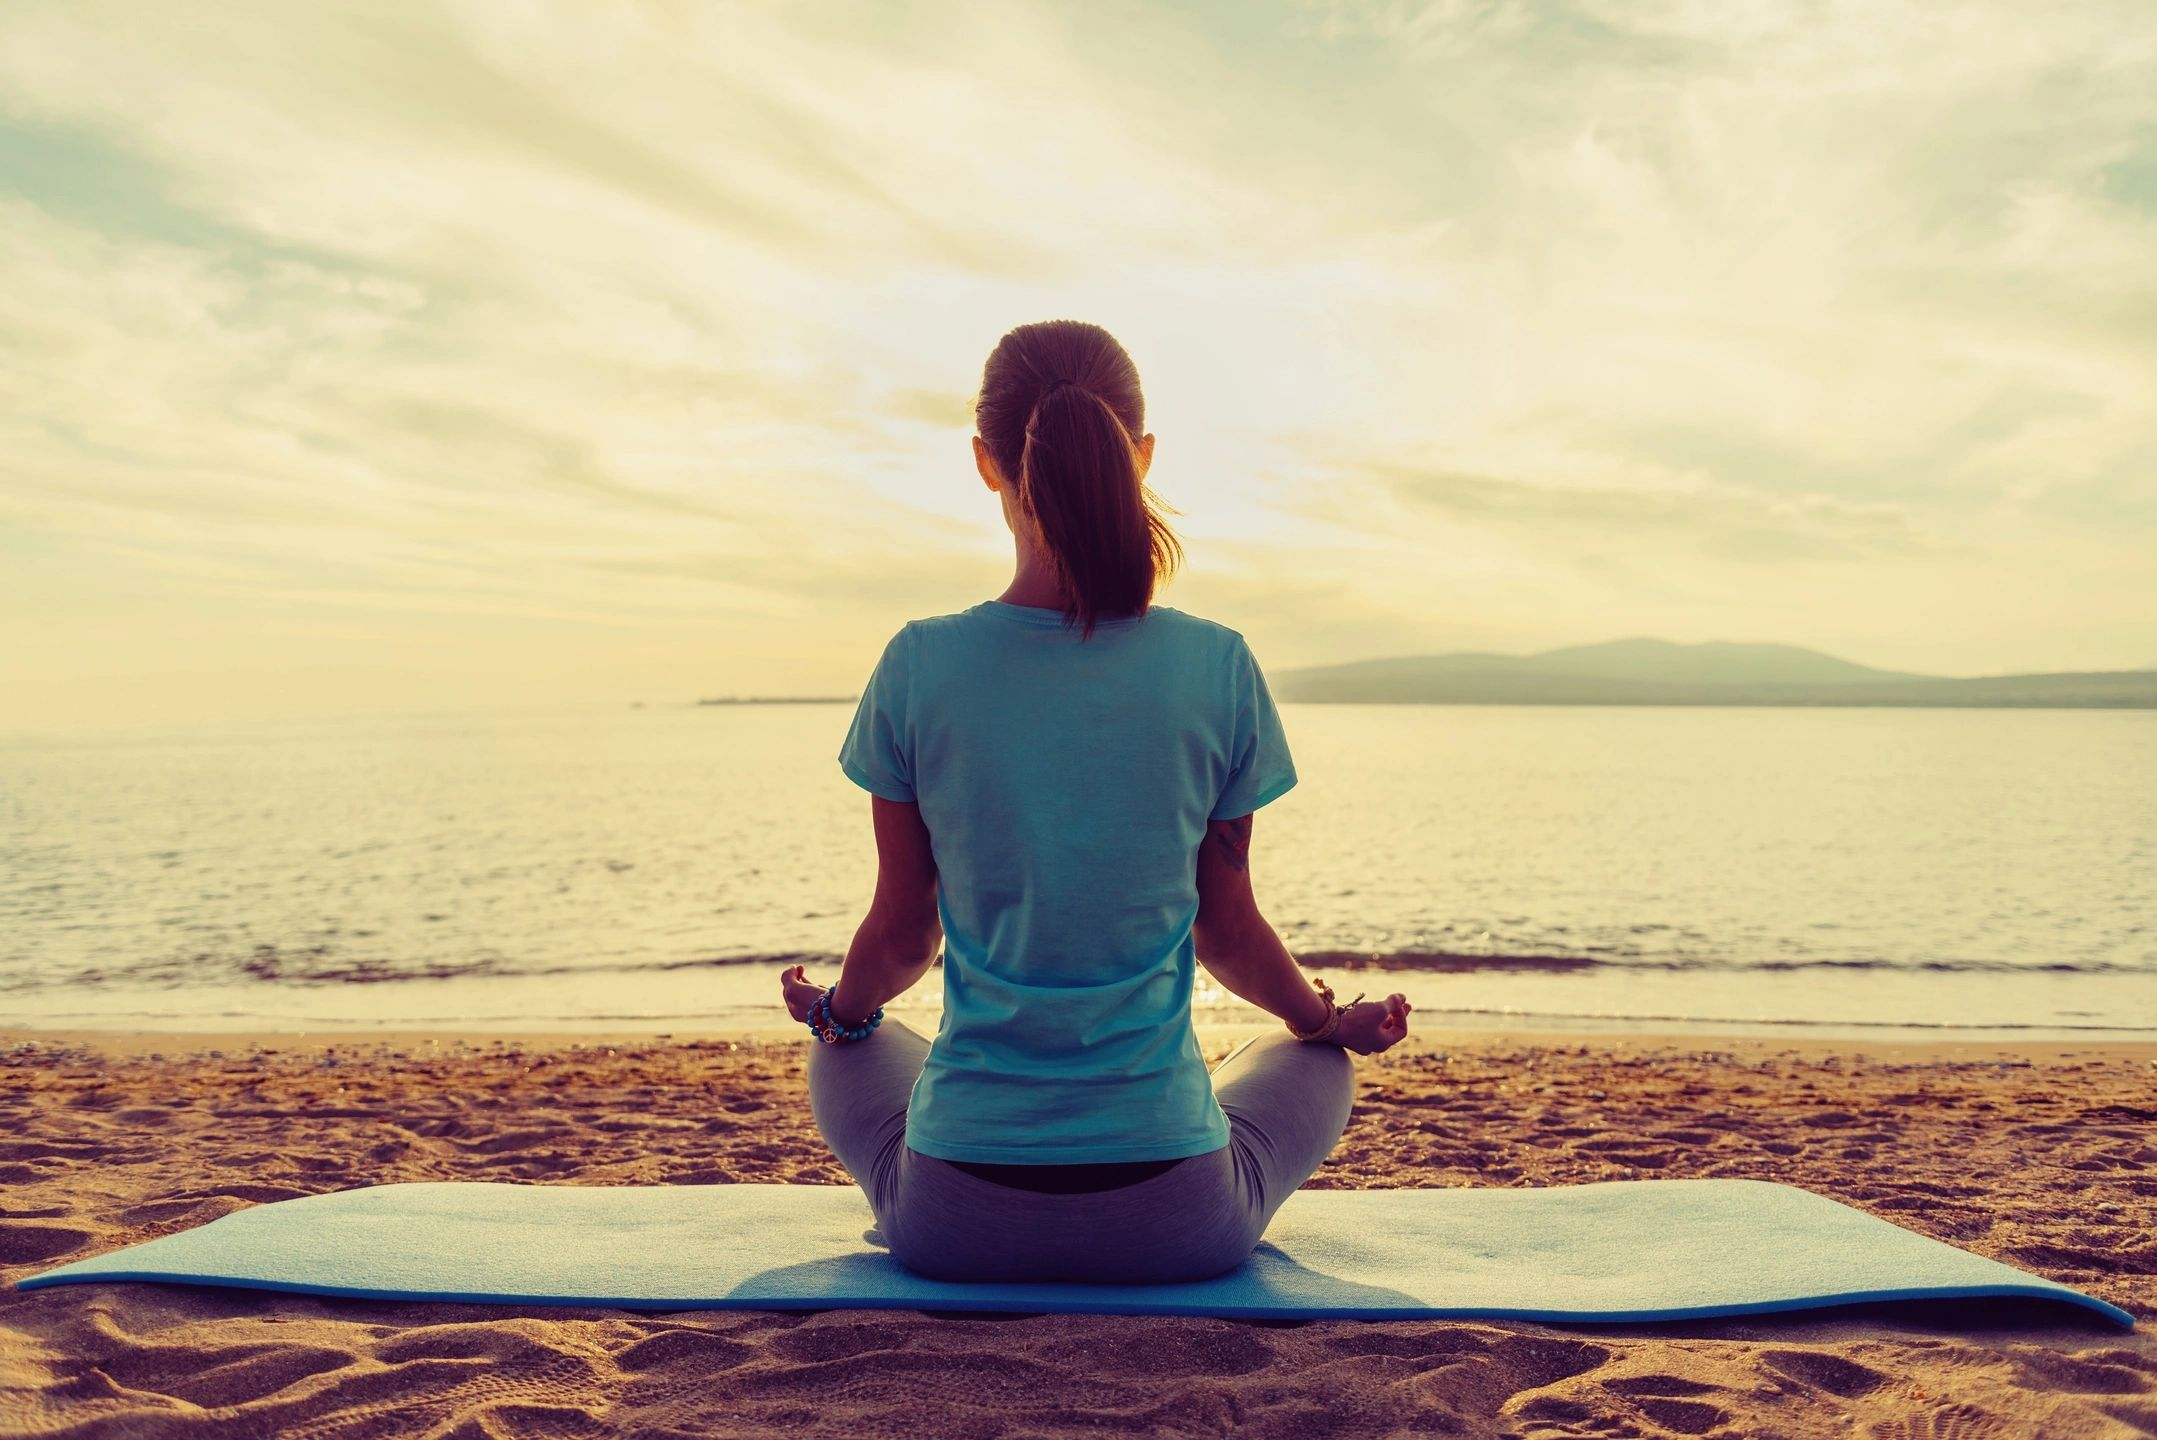 6 Steps to Vaporize Your Negative Beliefs and Heal Your Self Criticism